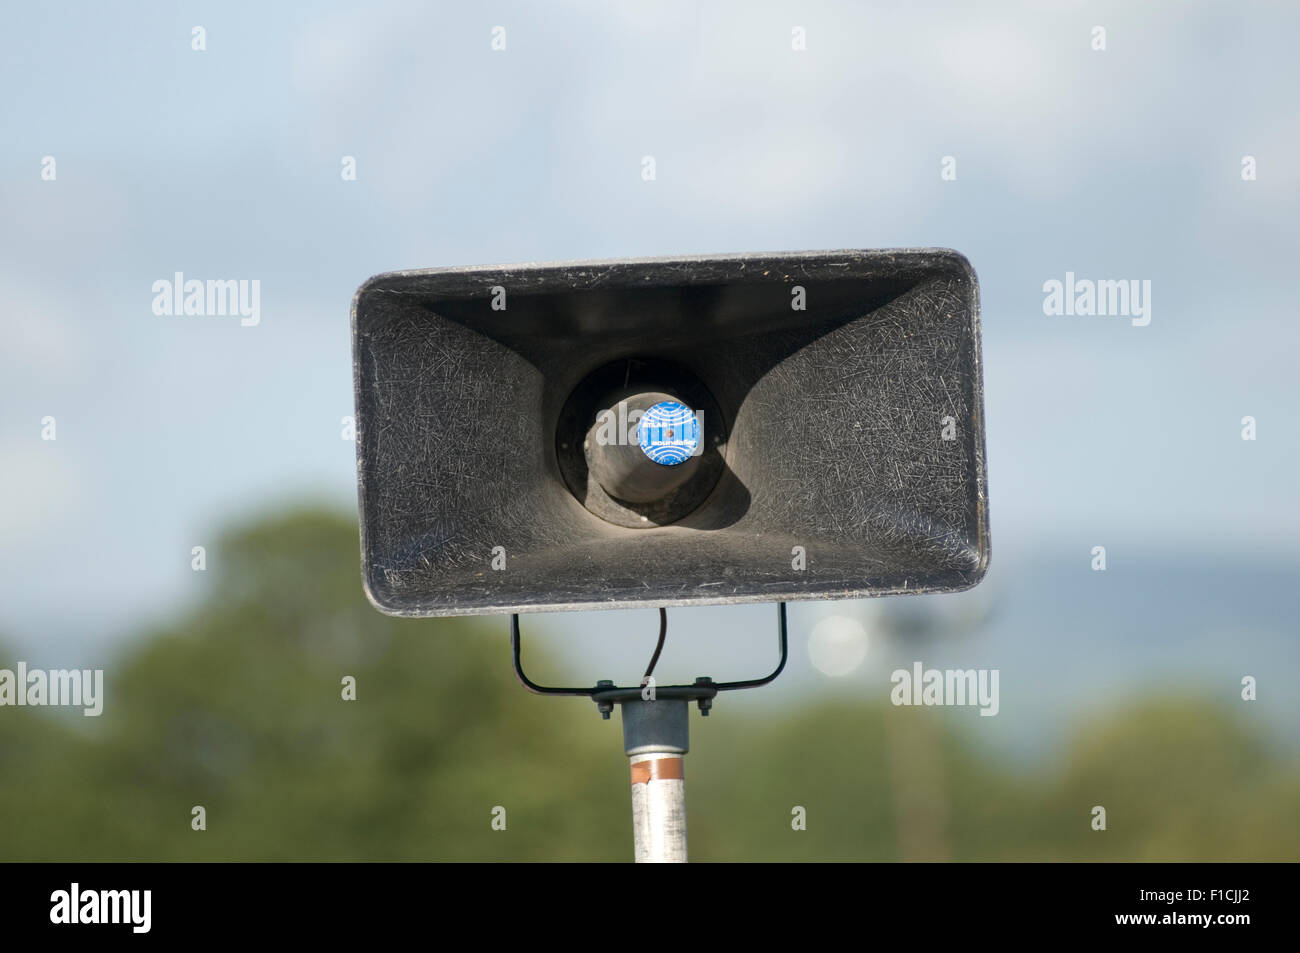 pa horn horns speaker speakers public address system voice event sound speakers announcer announcement announcements - Stock Image